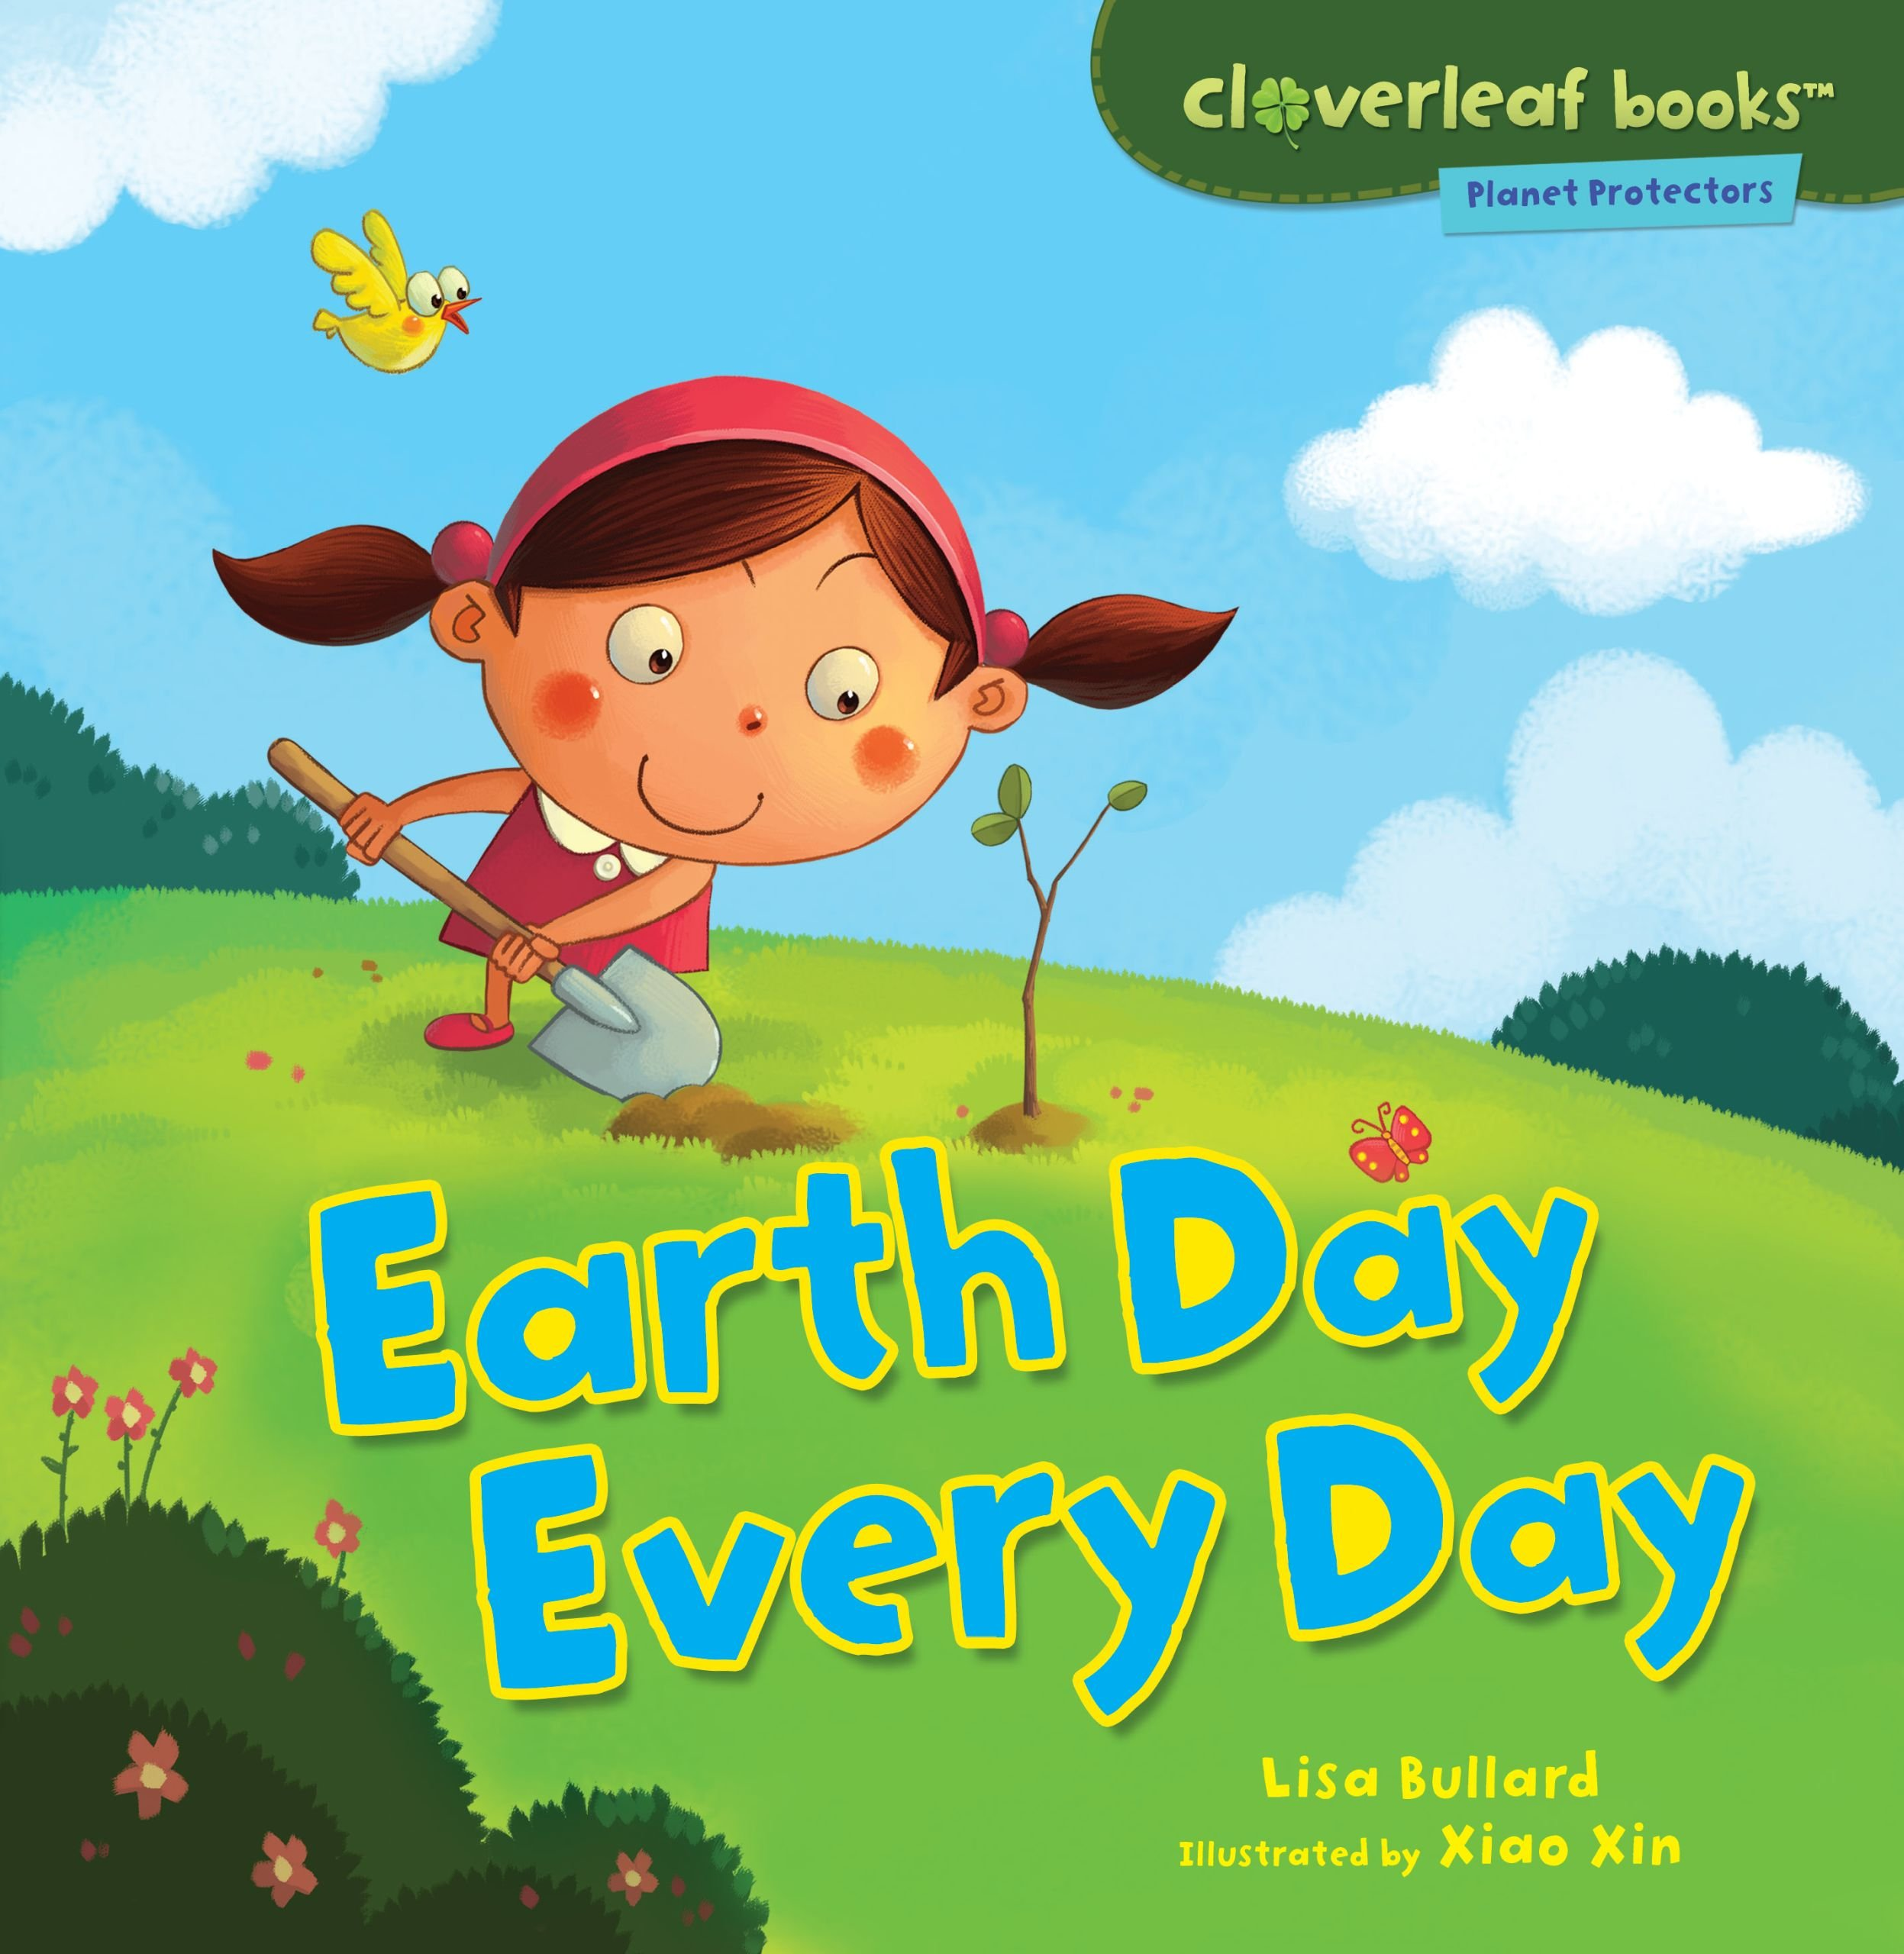 Earth Day Every Day (Cloverleaf Books: Planet Protectors): Lisa ...